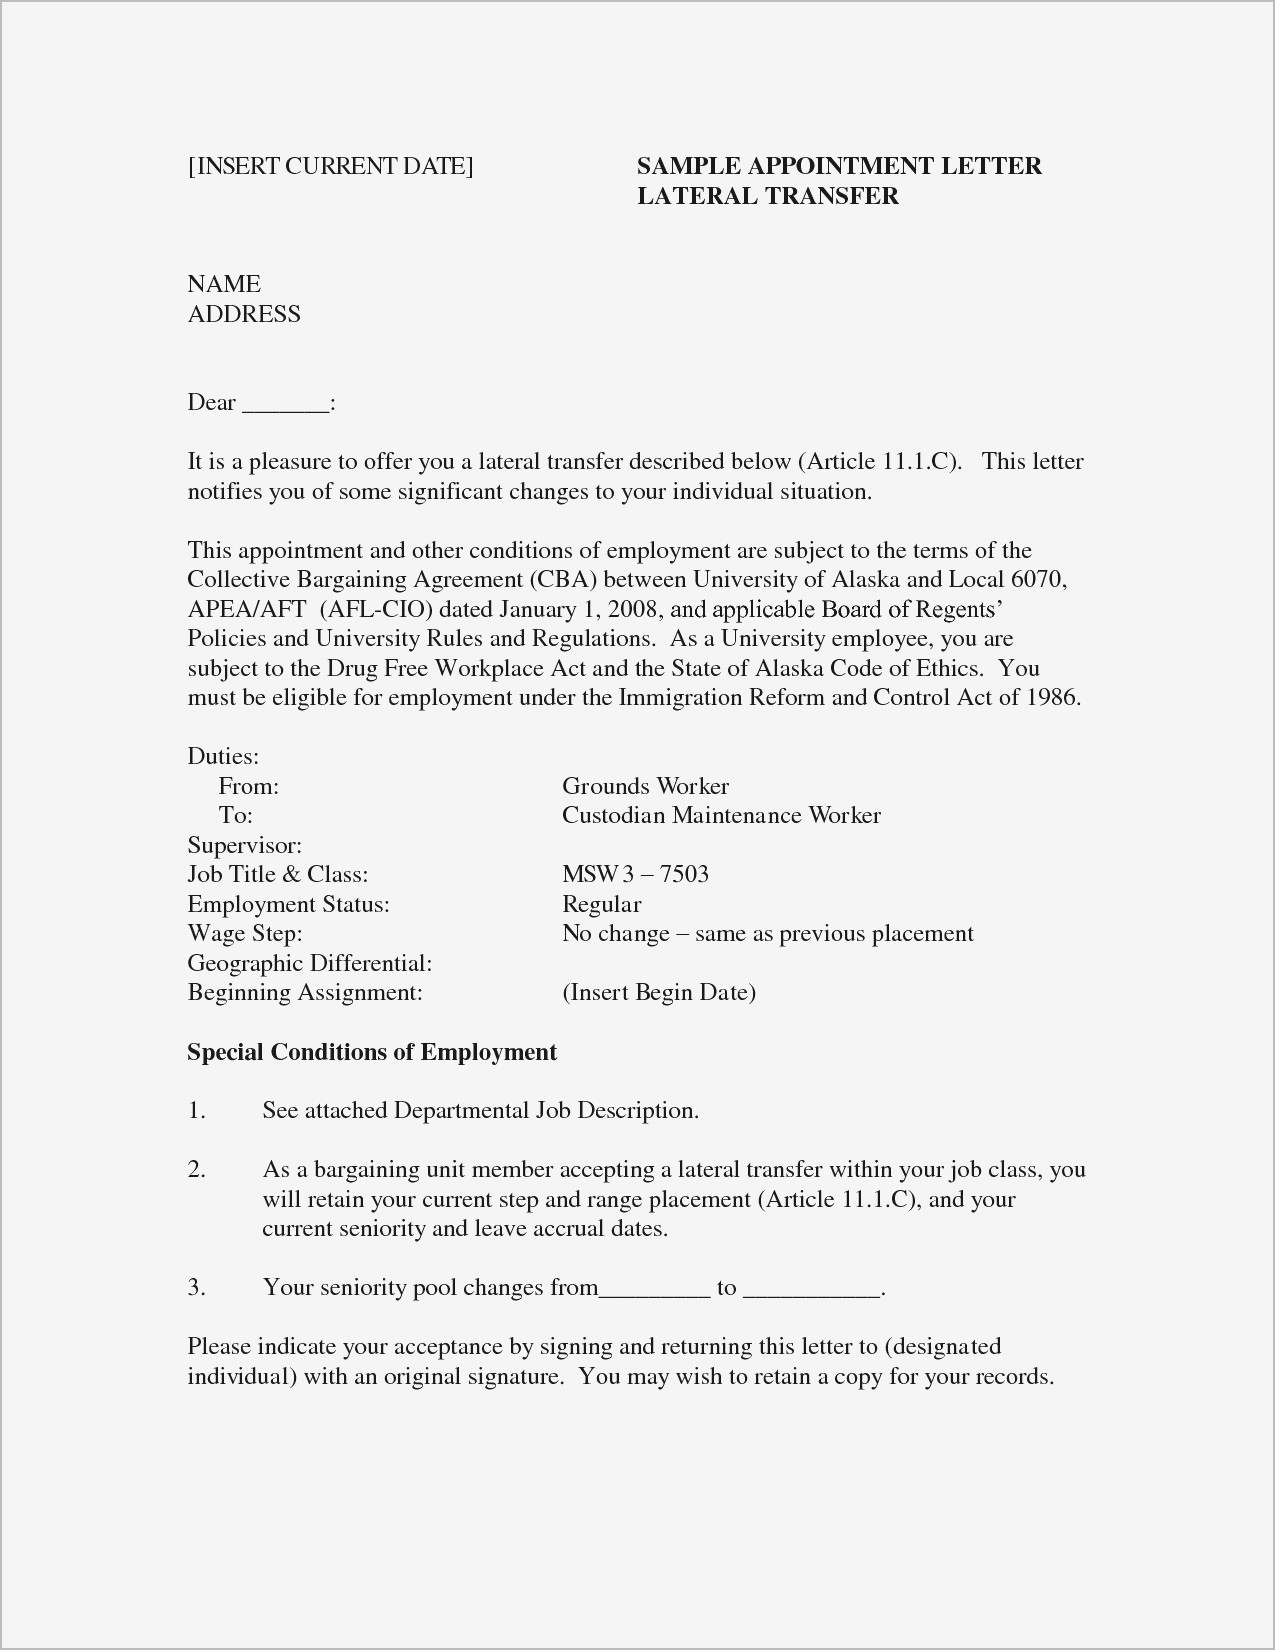 Public Record Removal Letter Template Samples | Letter Cover Templates